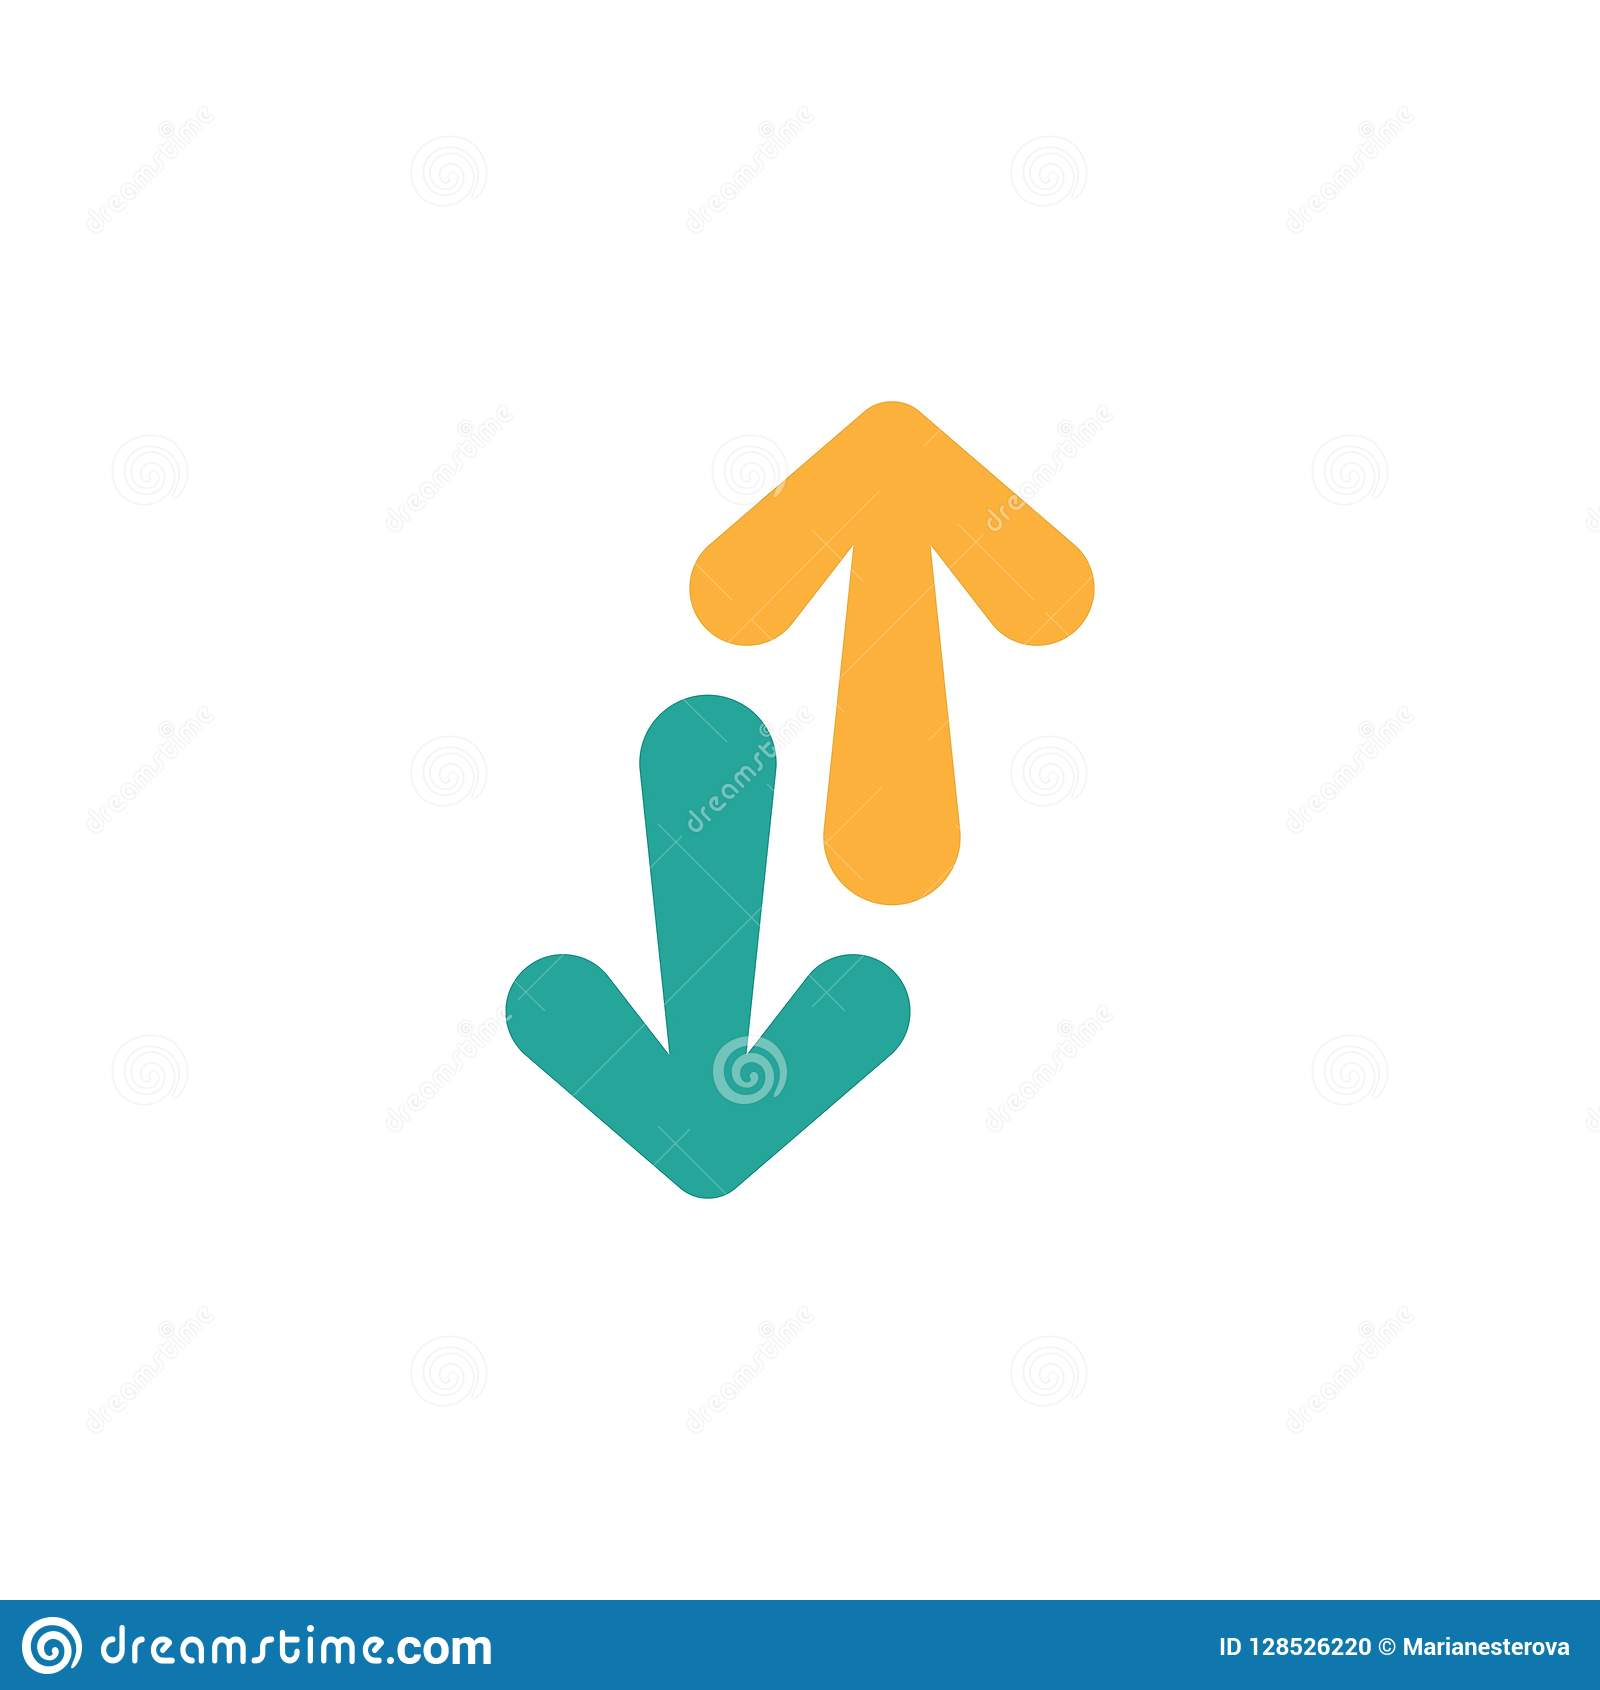 66f25bf61 Flip Vertical vector icon. two orange and blue opposite cartoon arrows  isolated on white. Flat exchange icon.